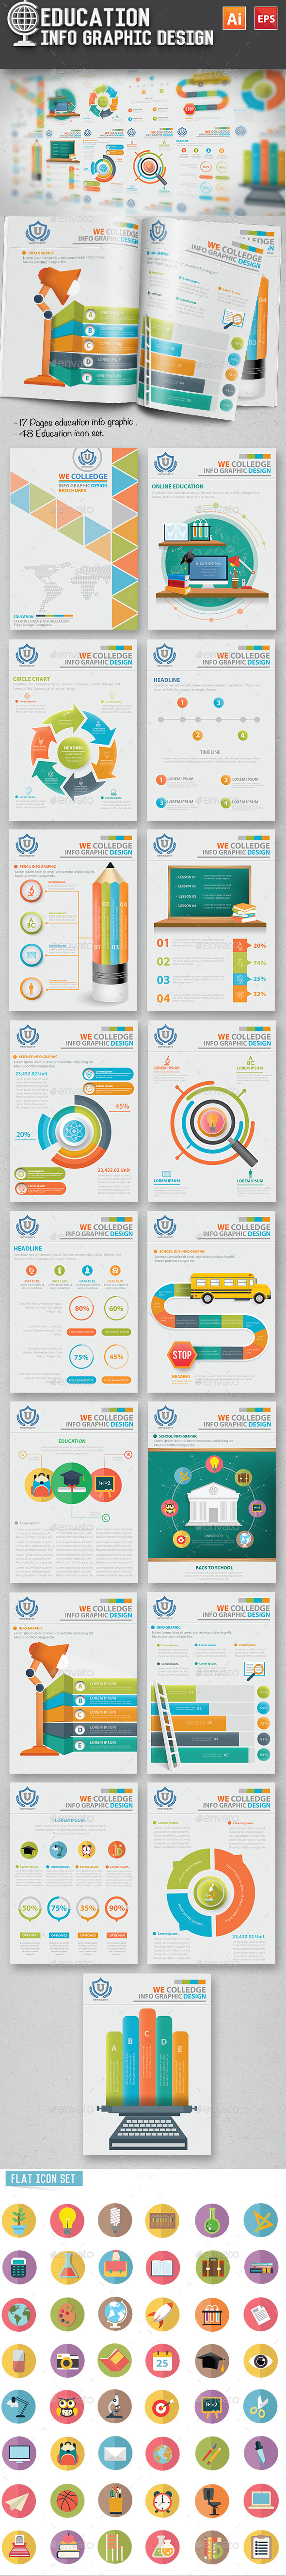 Education Infographic 17 Pages Design - Infographics